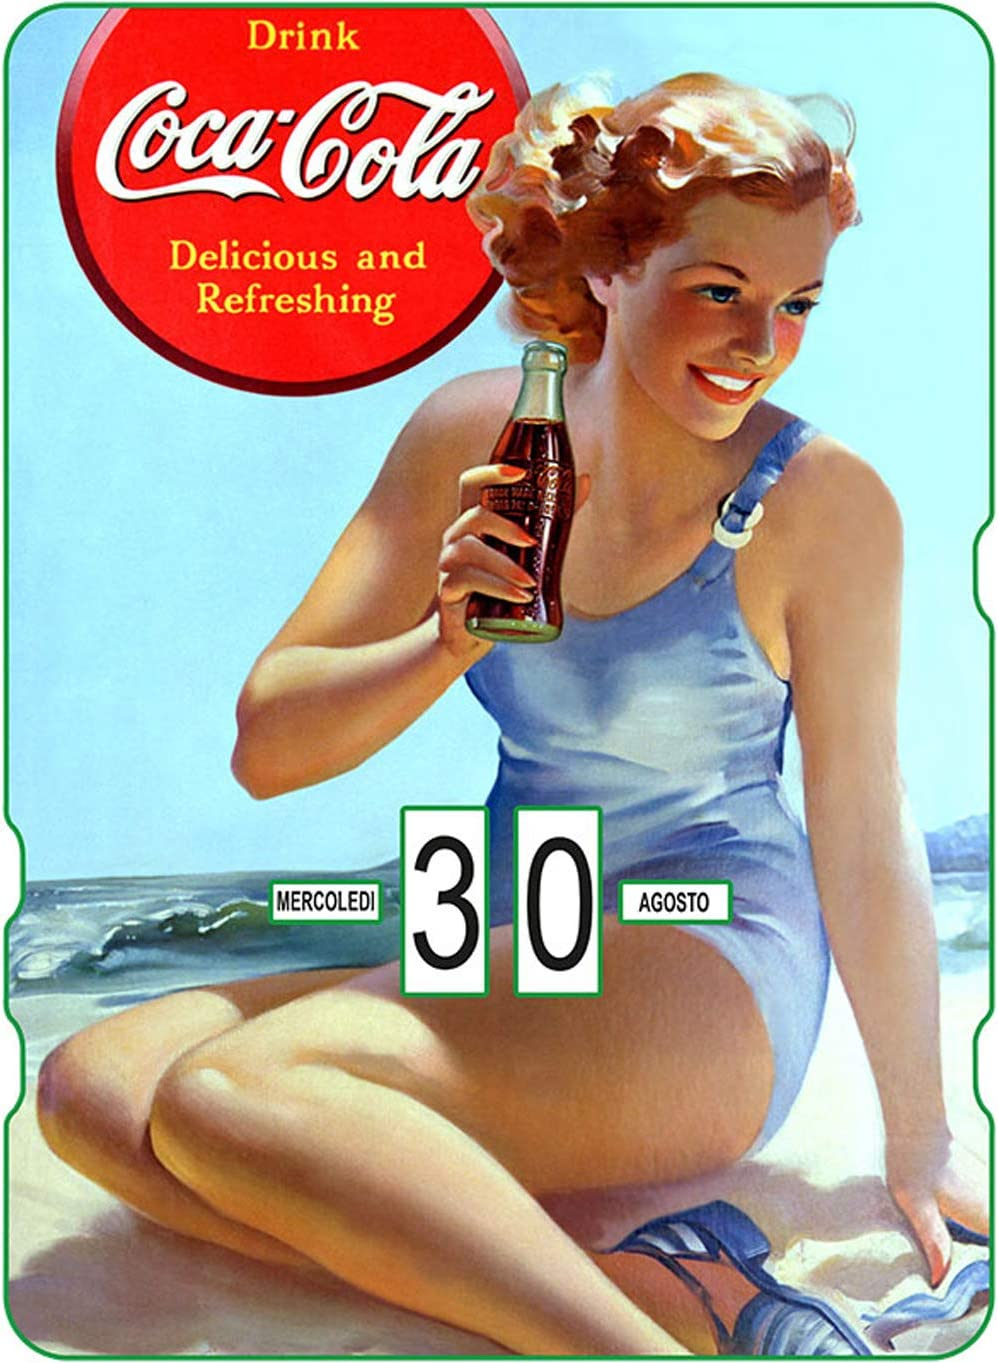 Calendario perpetuo Coca-Cola Pin-Up in spiaggia